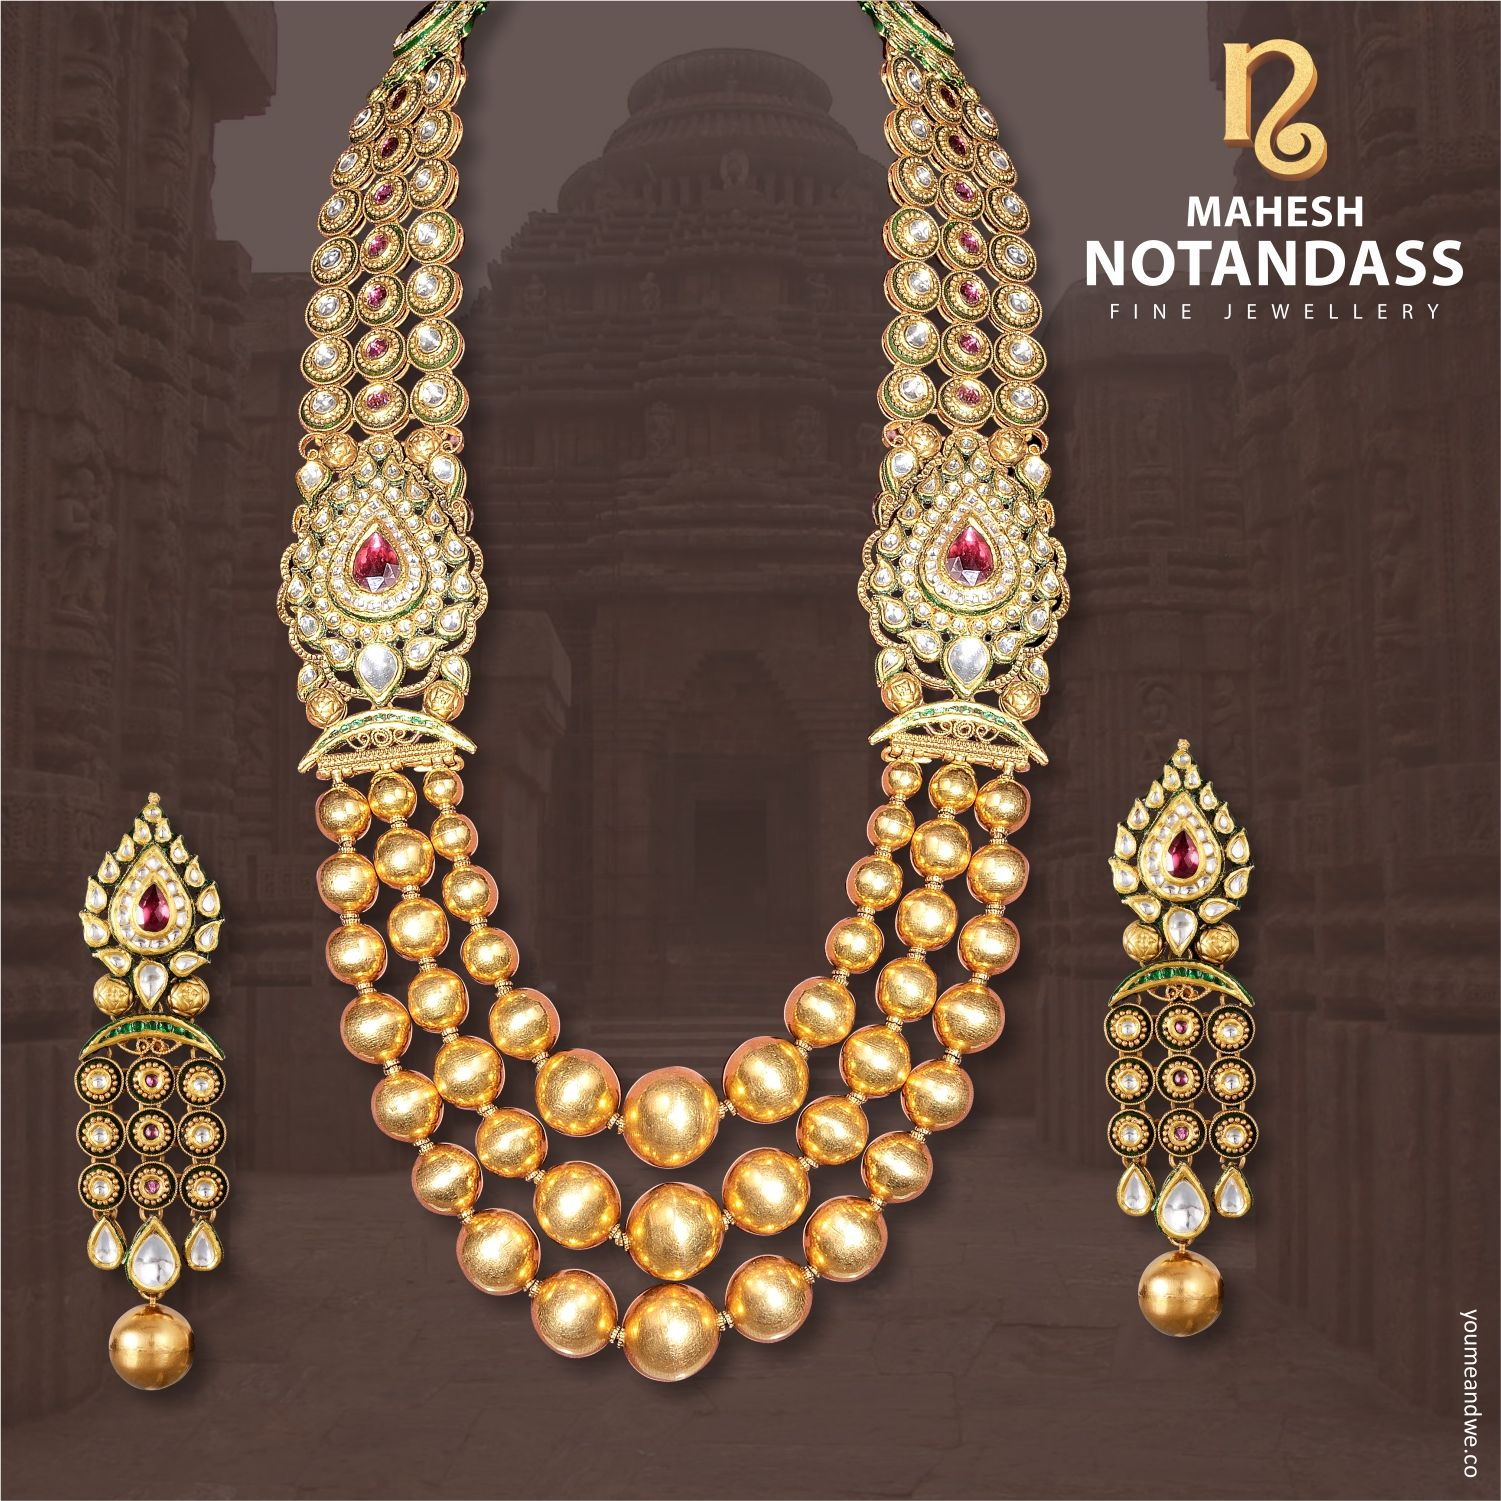 Pin by Mahesh Notandass Fine Jewellery on Midas Touch Pinterest